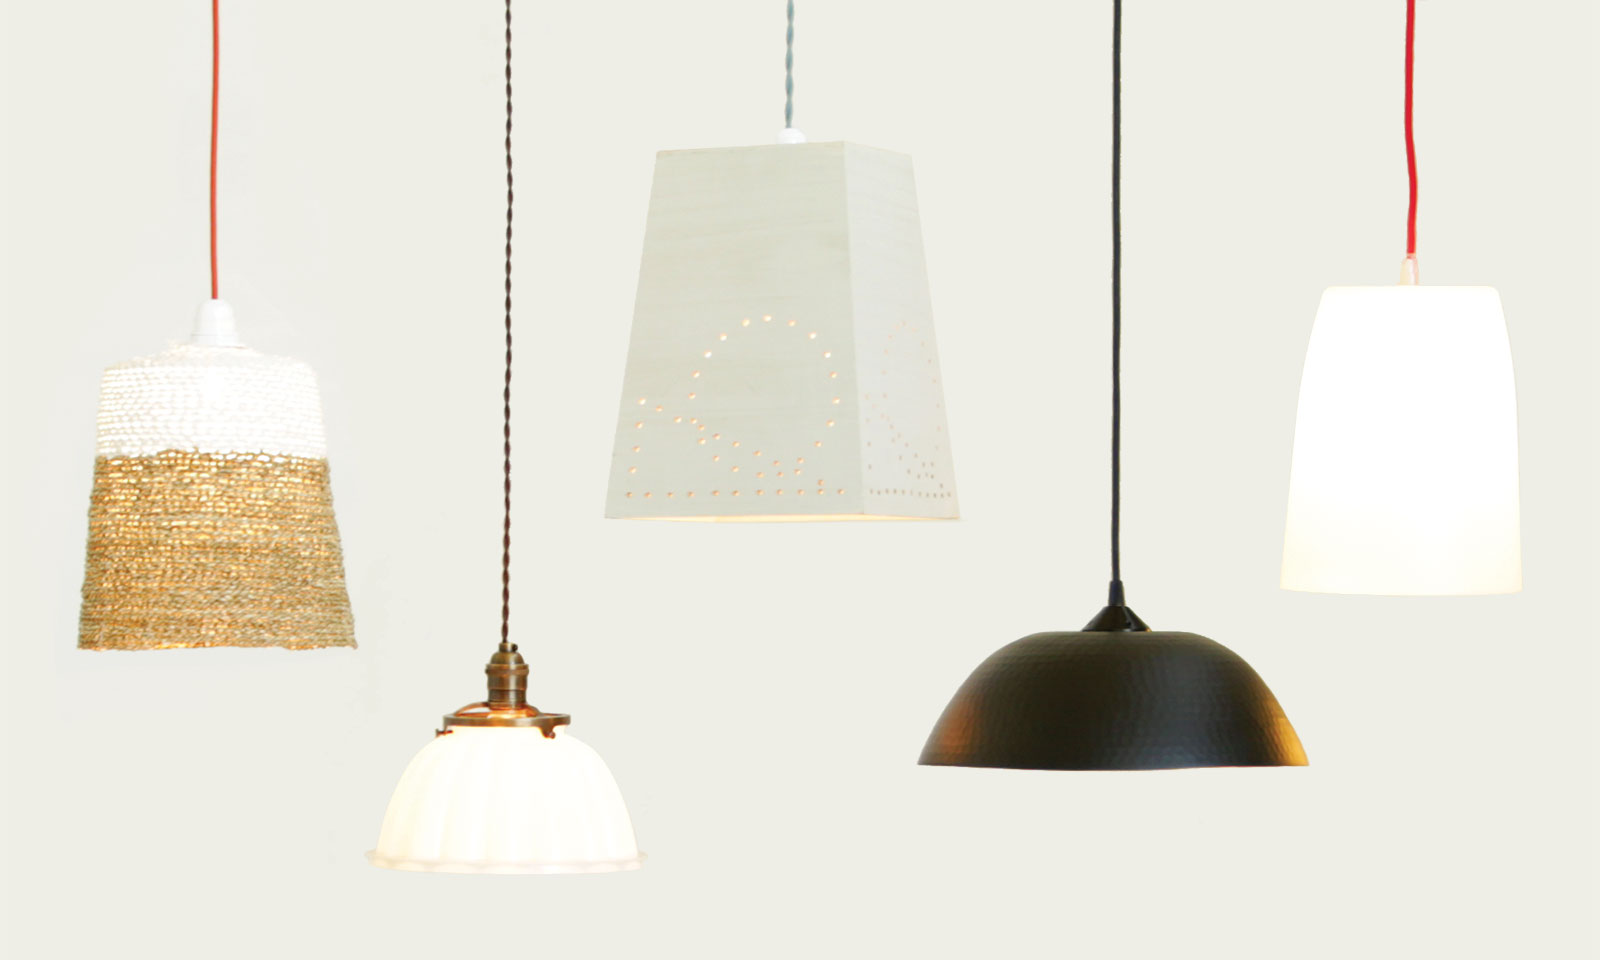 5 Ways to Make Hanging Lamps: 22 Steps (with Pictures)